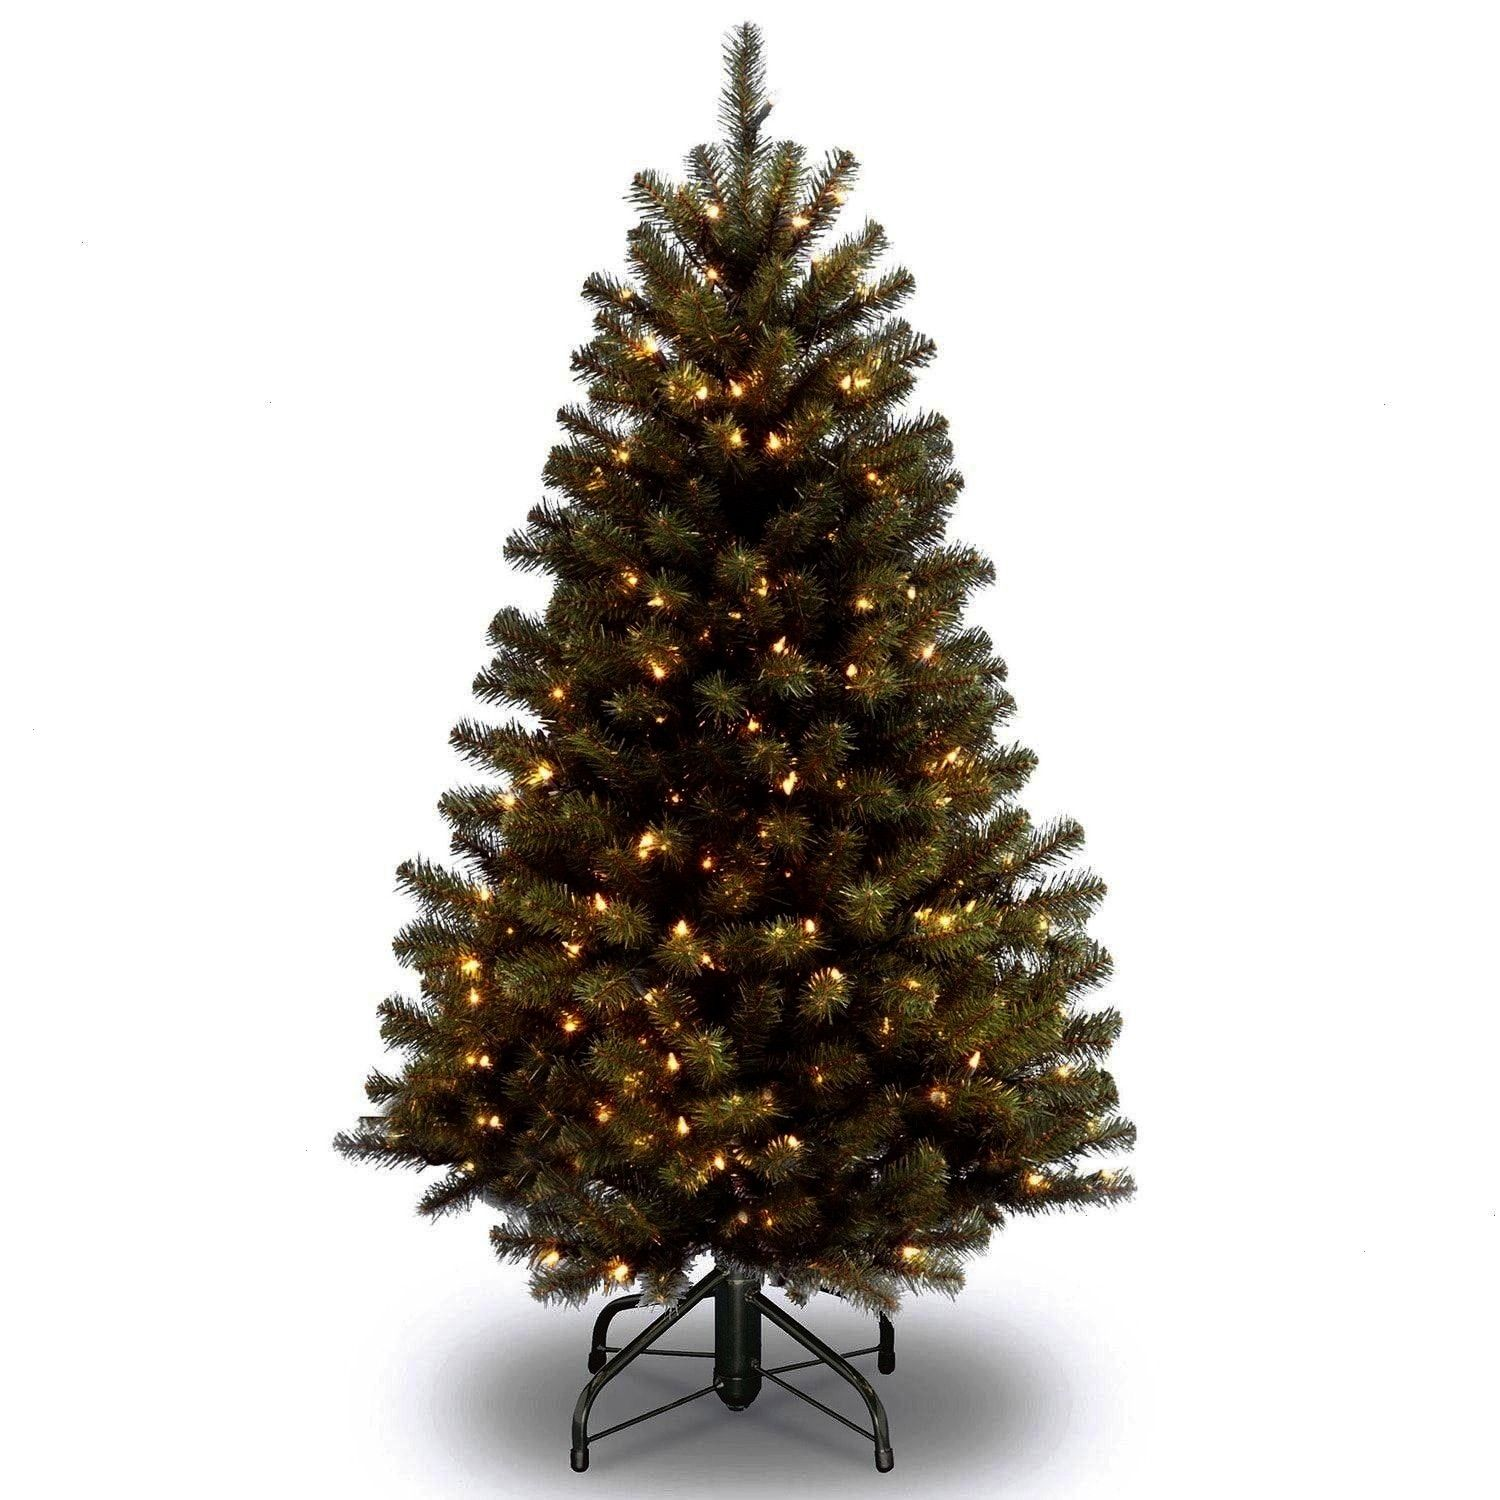 5 ft North Valley Spruce Tree with Clear LightsNational Tree Company 5 ft North Valley Spruce Tree with Clear LightsTree Company 5 ft North Valley Spruce Tree with Clear...